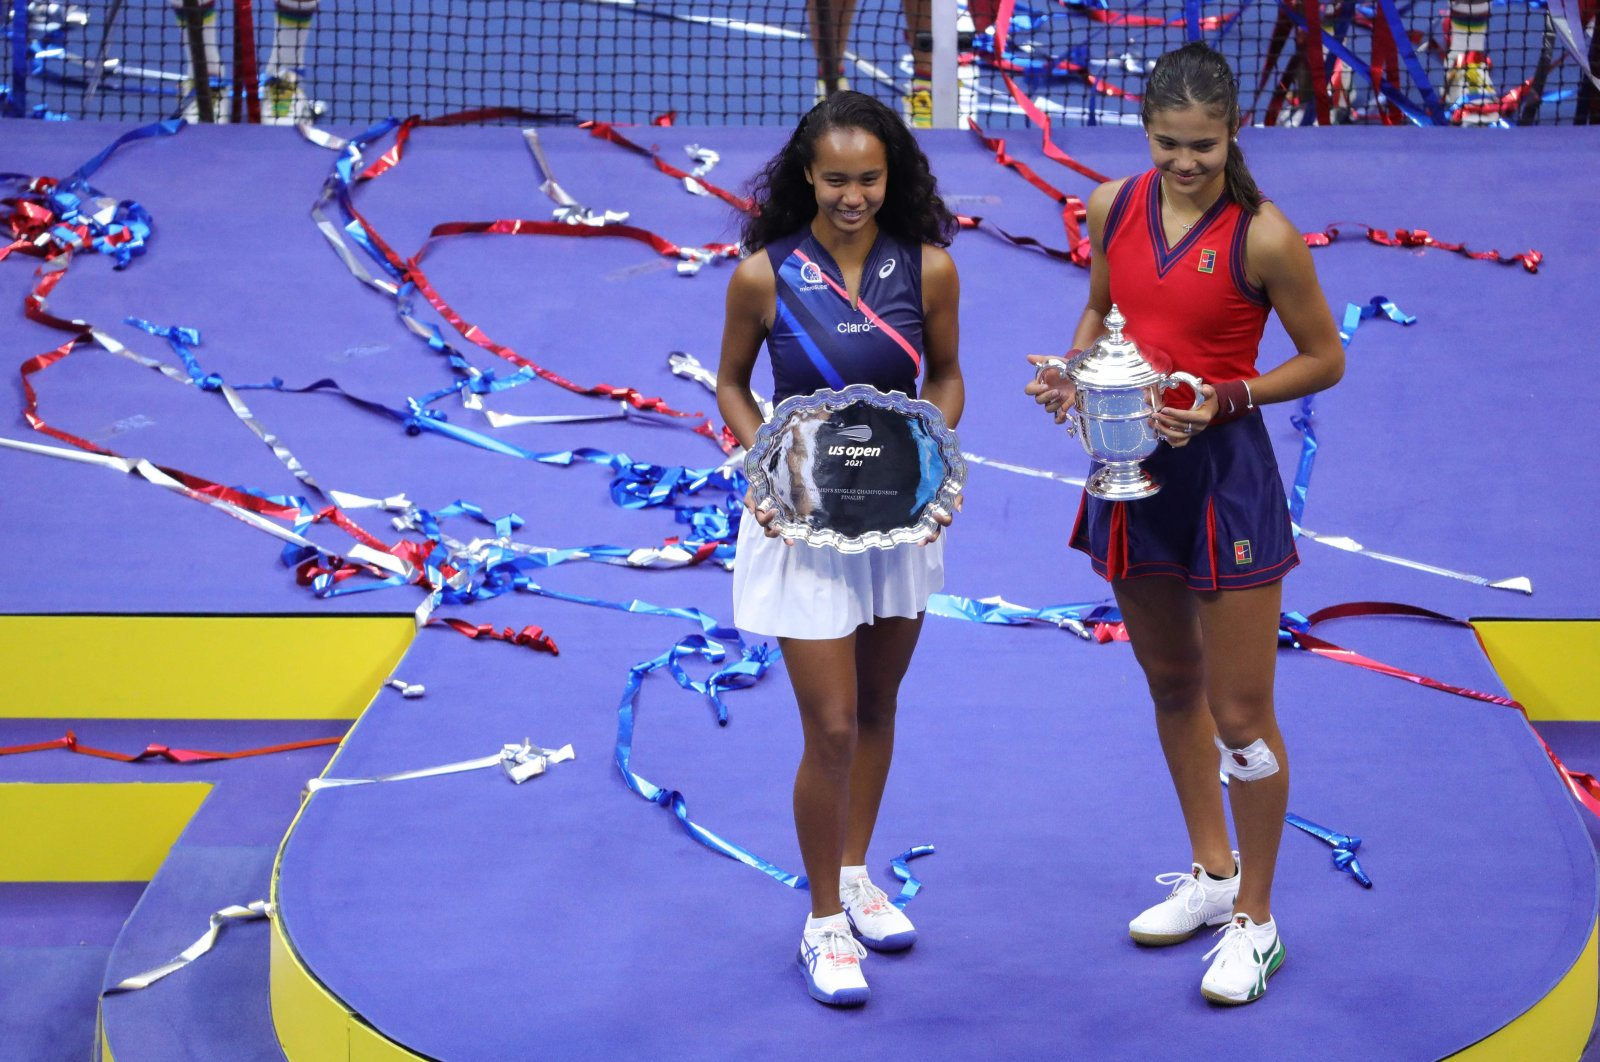 U.S. Open champions Britain's Emma Raducanu (R) and runner-up Canada's Leylah Fernandez pose with their trophies in New York, U.S., Sept. 11, 2021. (AFP Photo)